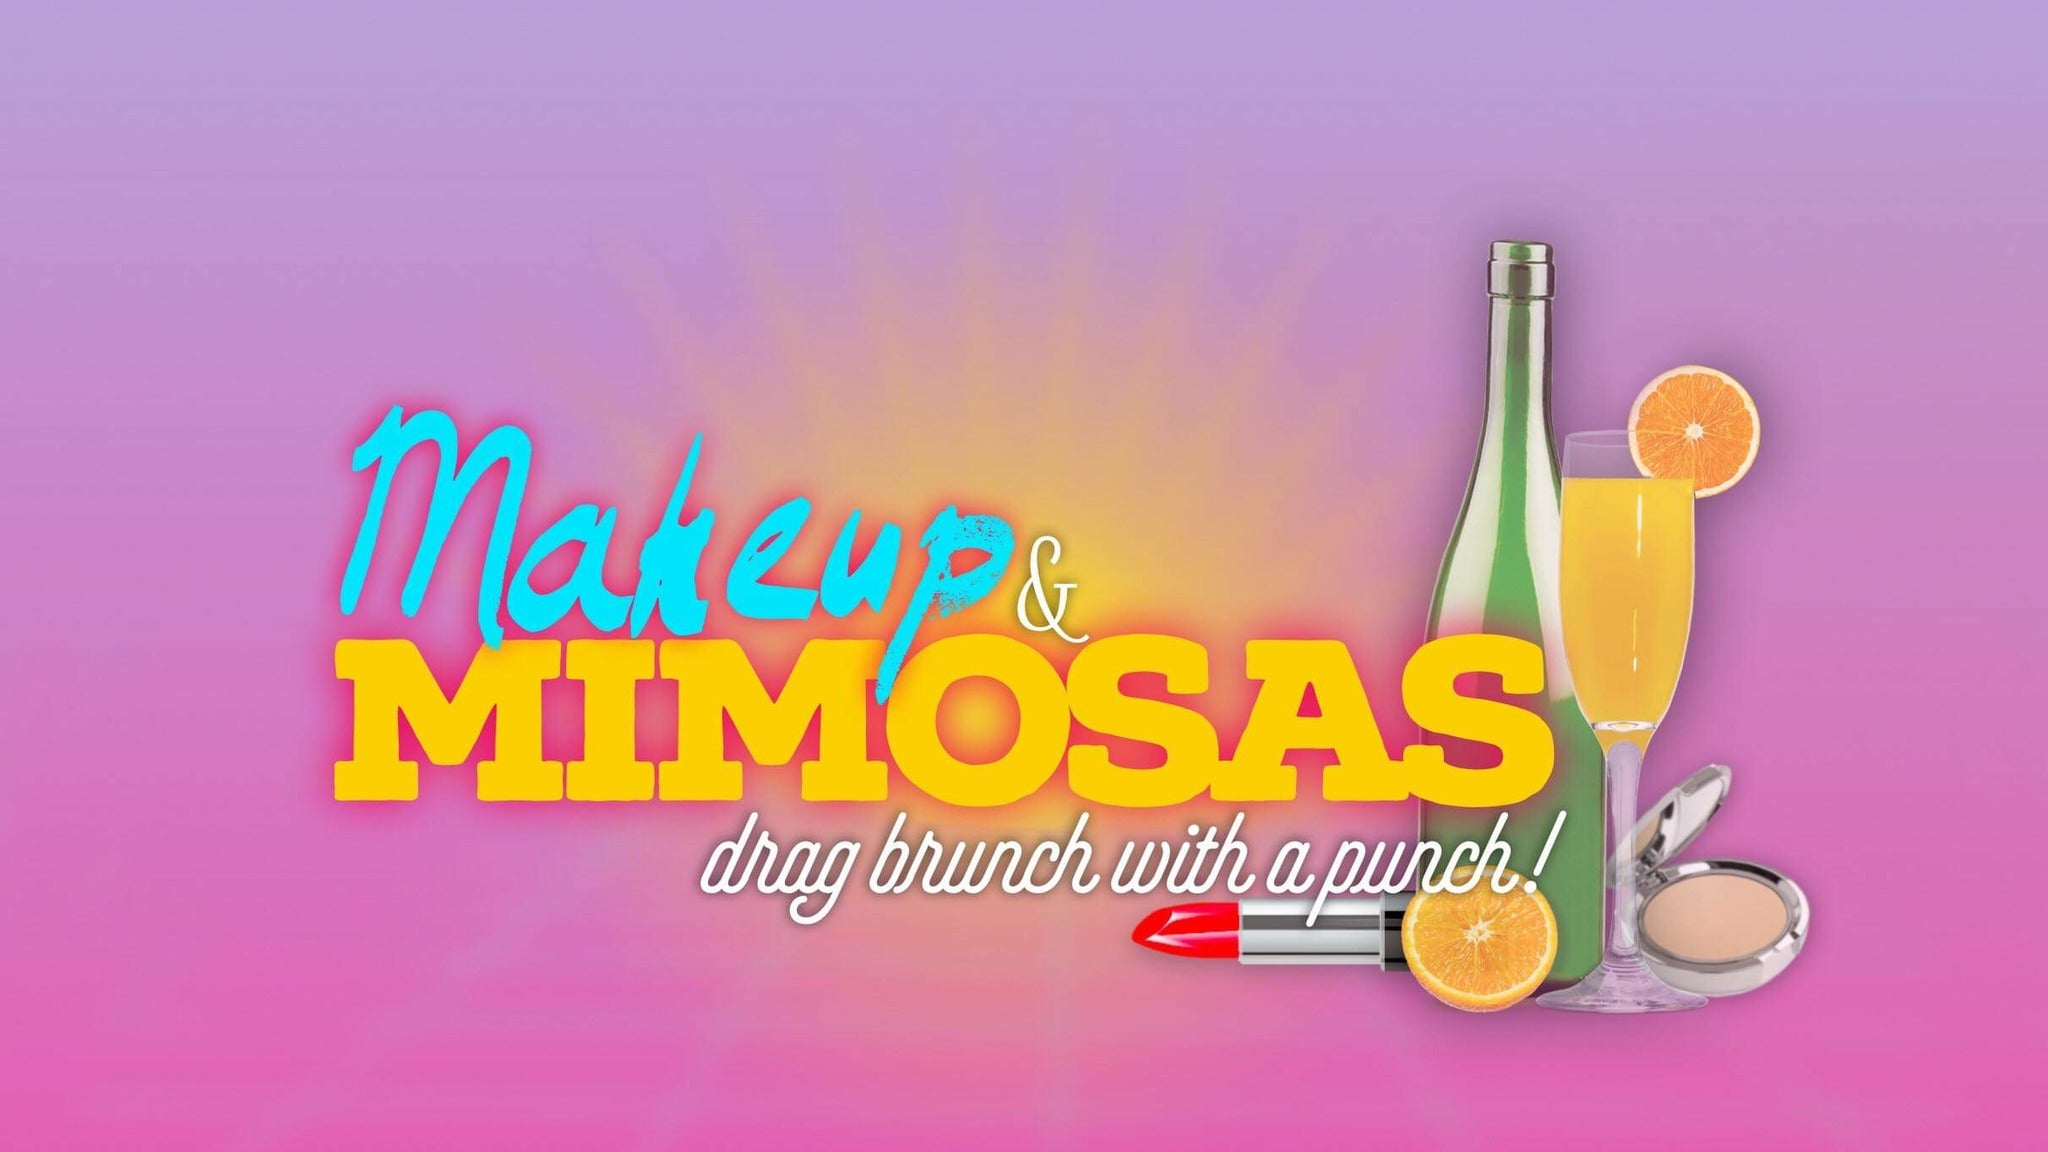 Makeup & Mimosas: Drag Brunch with a Punch!